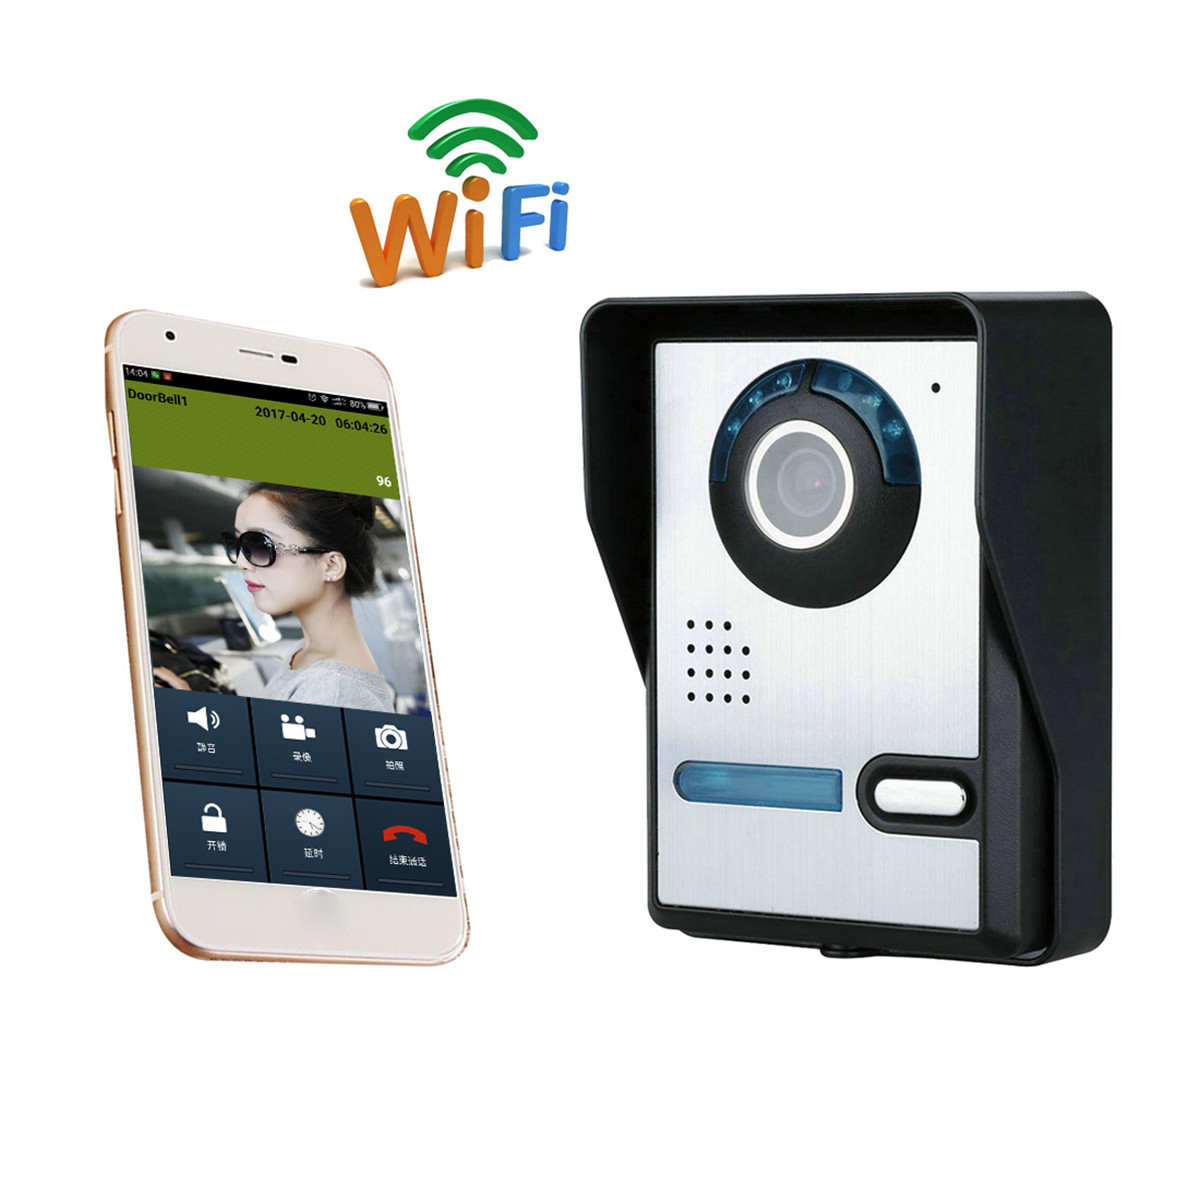 Wireless Alarm Waterproof Wifi DoorBell Camera Viewer NightVision Phone  Ring Bell 1/4inch CMOS Viewer Night Vision Phone Ring